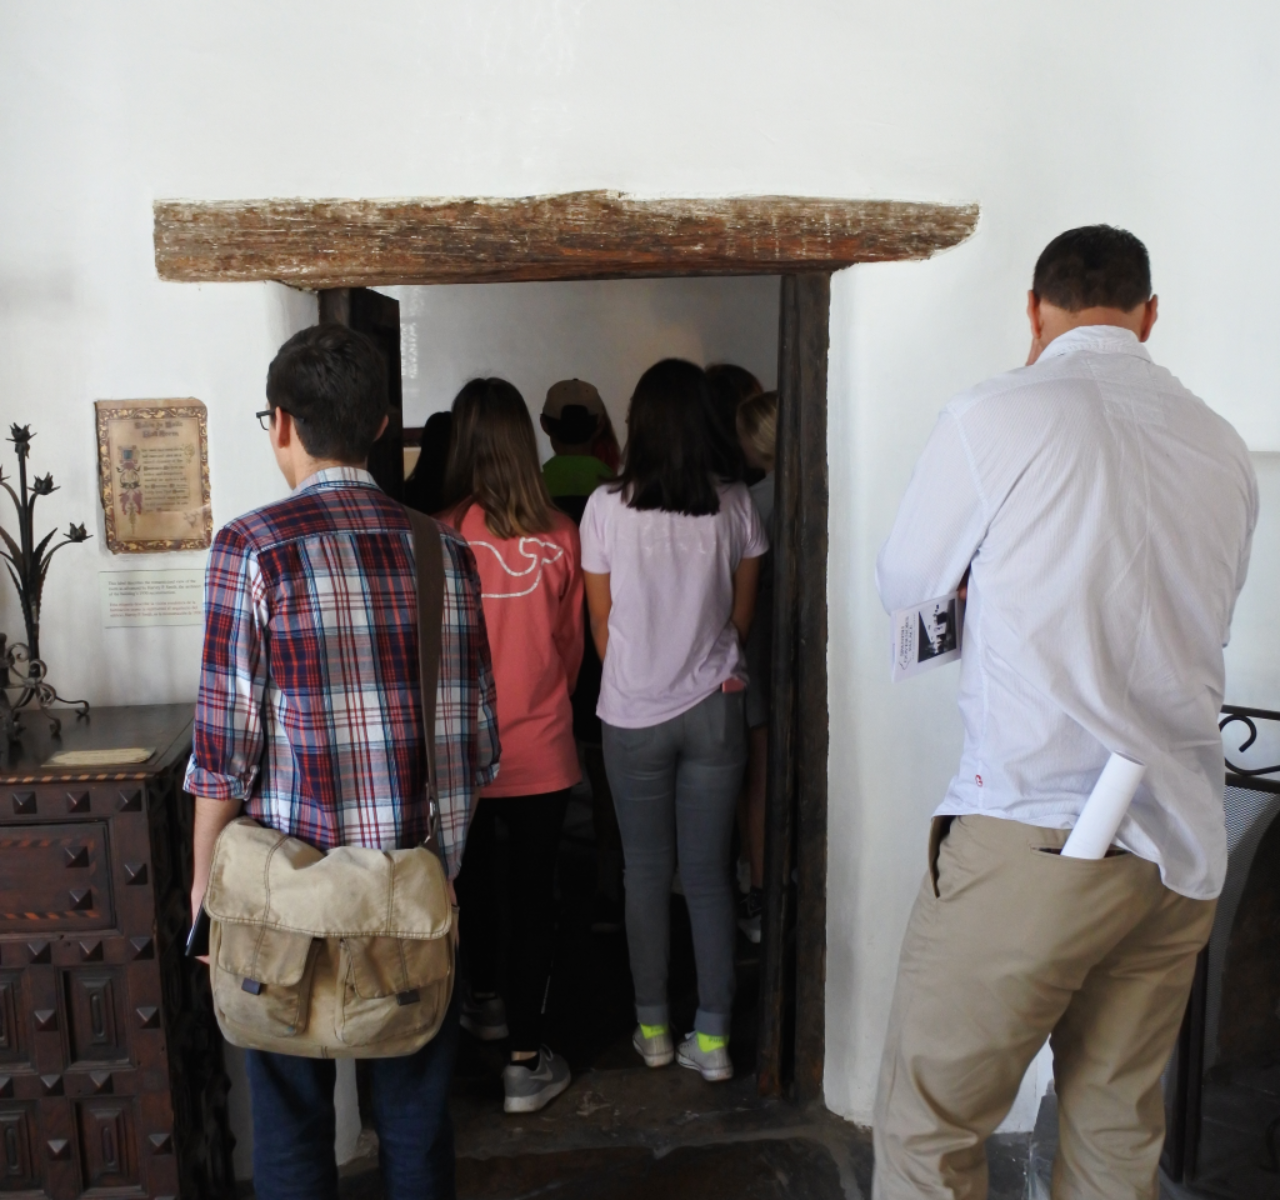 Students tour an historic interior